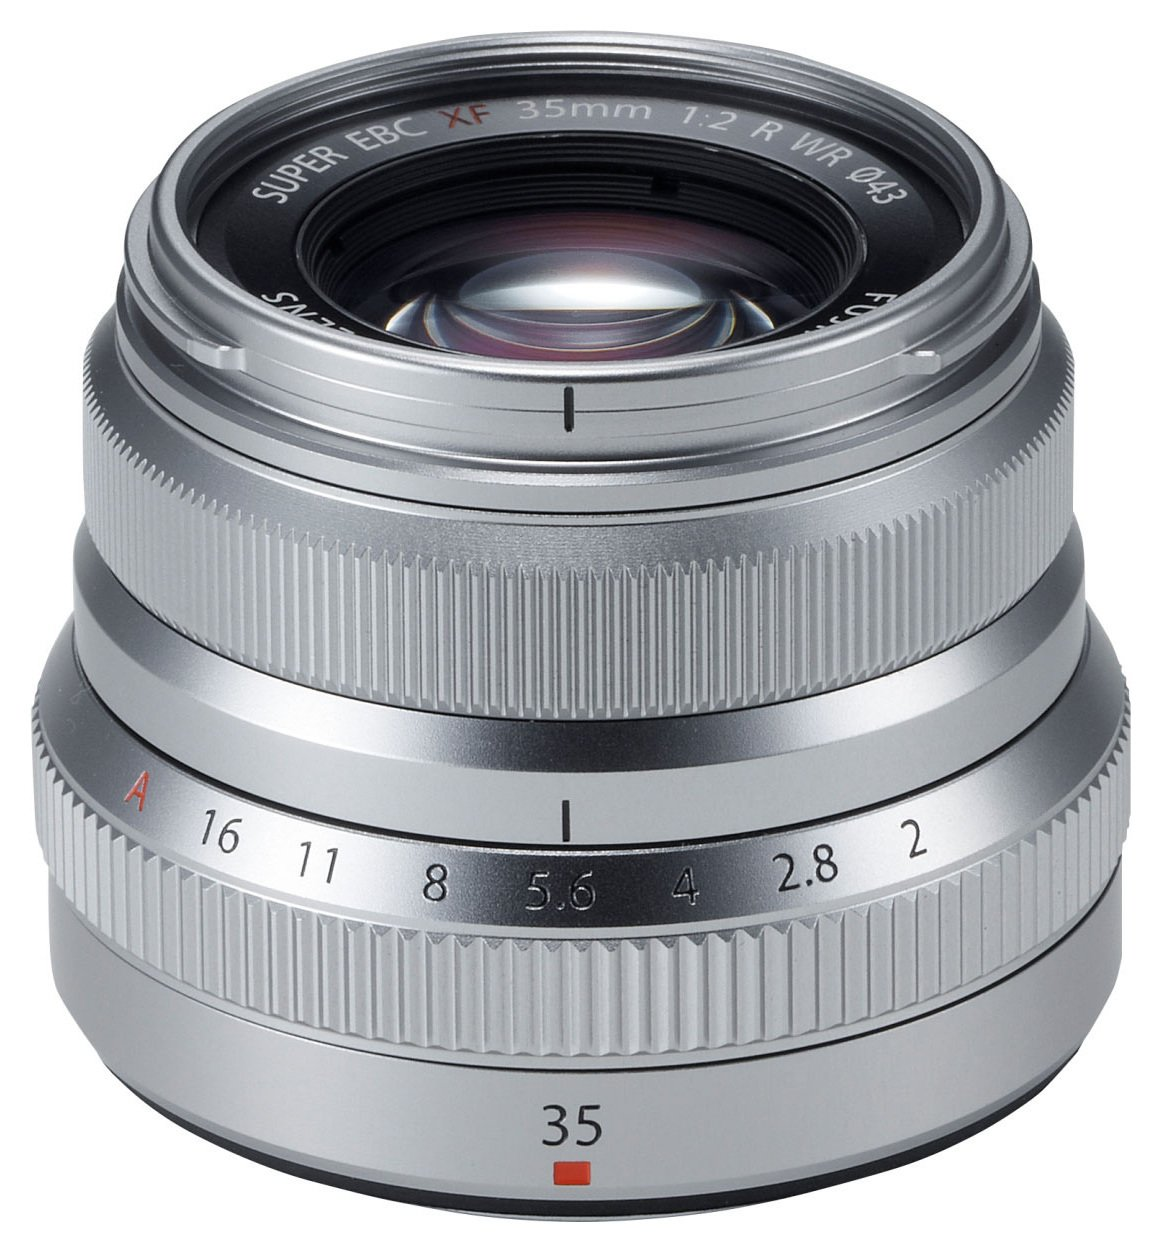 Image of Fujifilm - XF 35mm Silver Lens